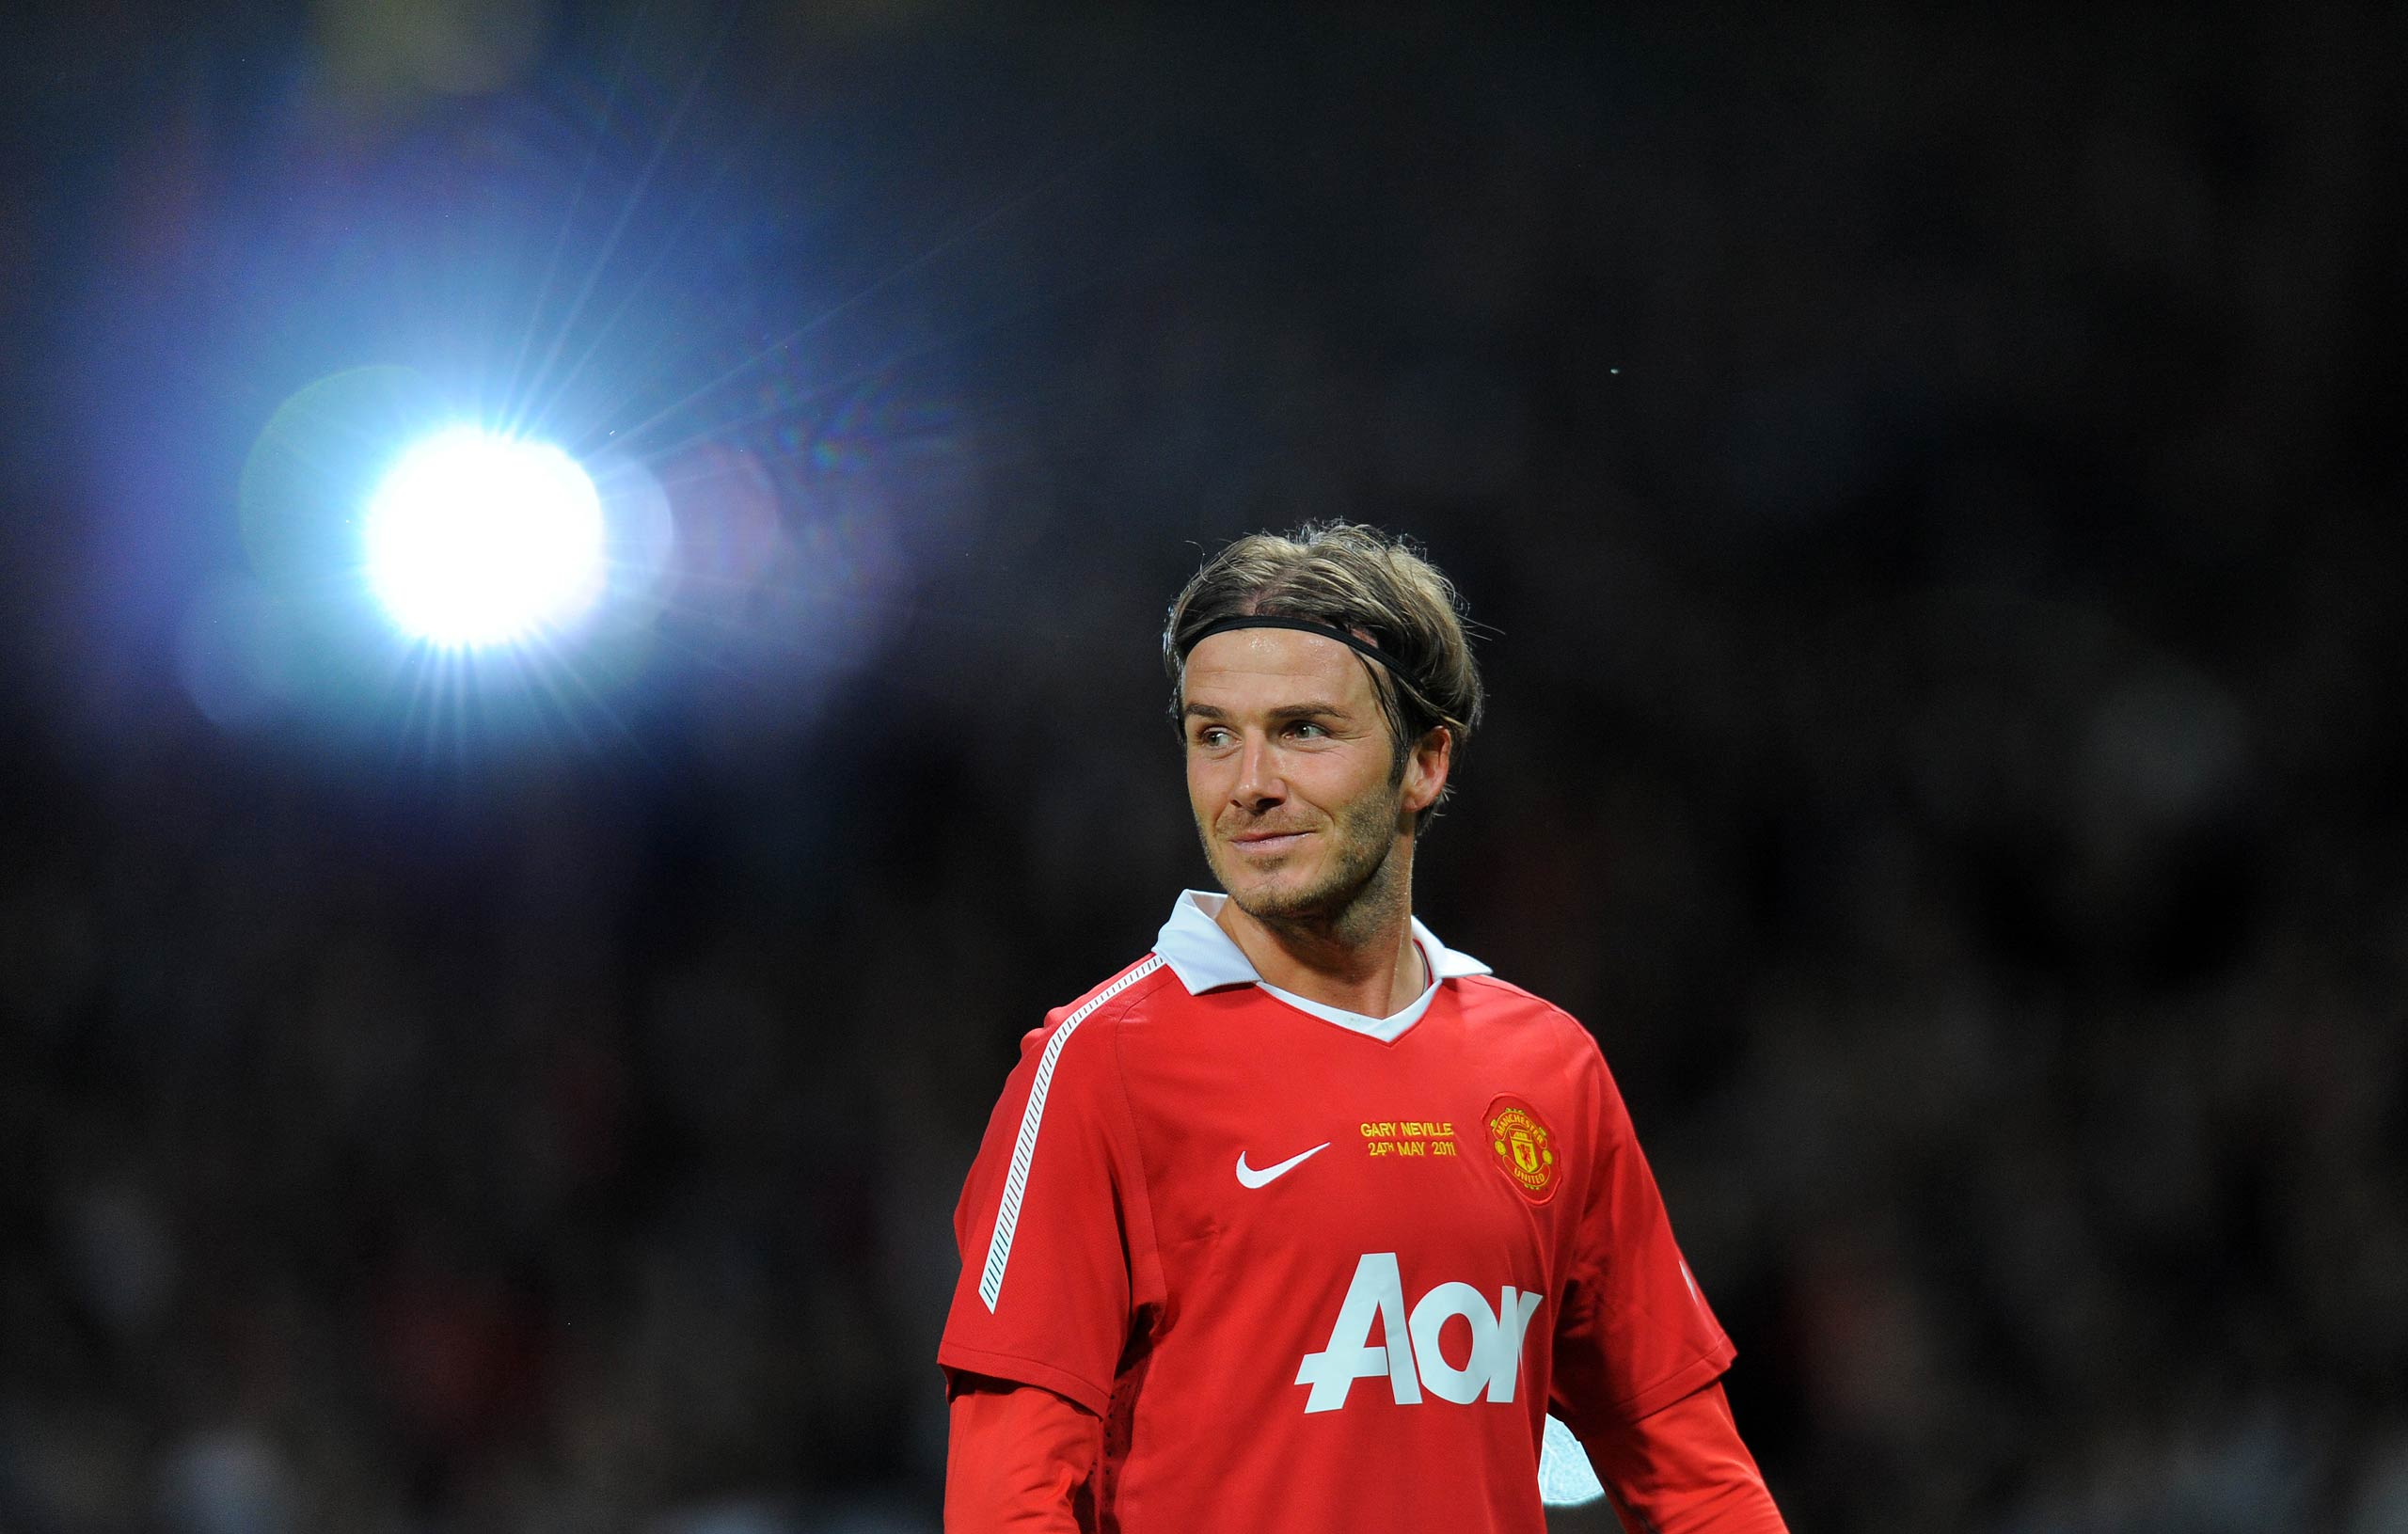 David Beckham receives applause after a testimonial football match between Manchester United and Juventus at Old Trafford in Manchester, England in 2011.